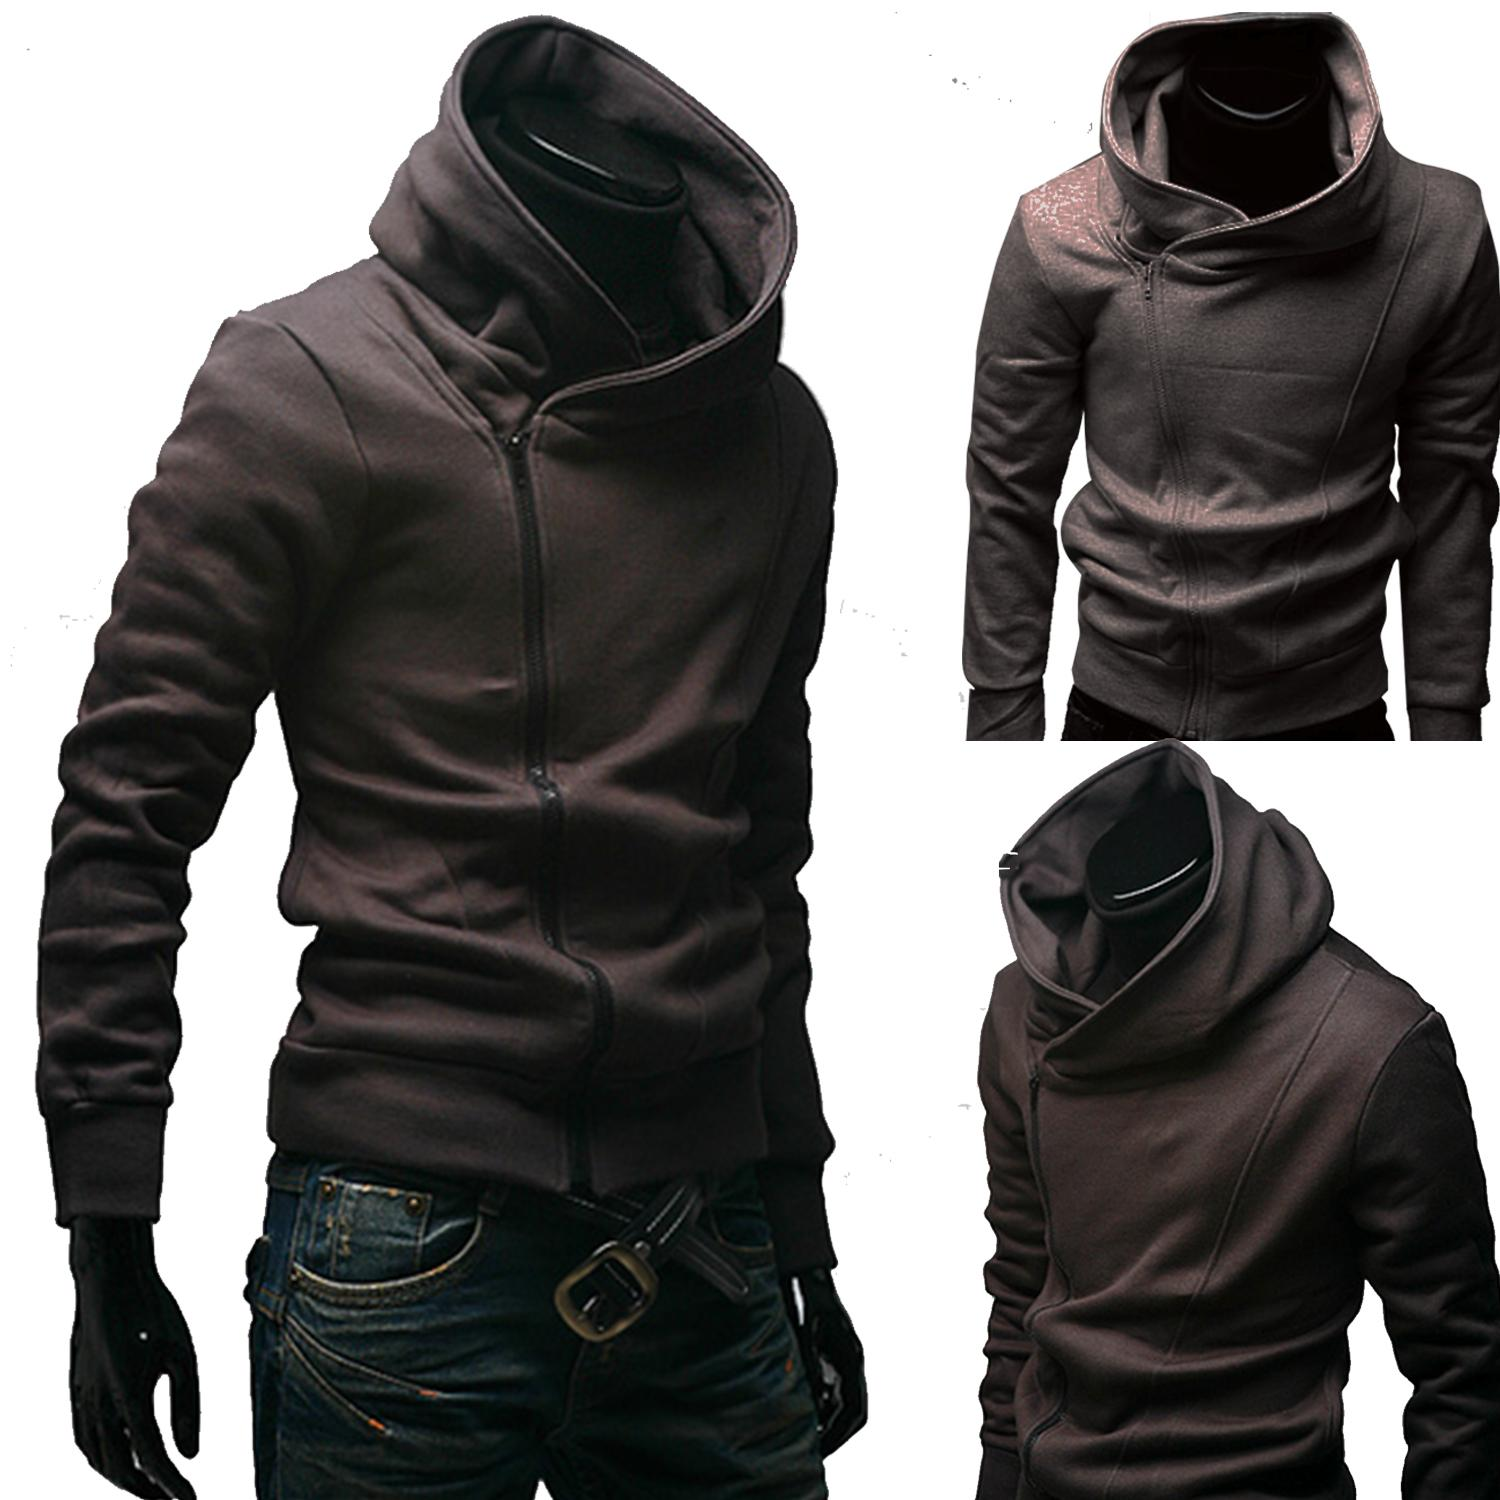 Slim Fit Hooded Jacket Slim Fit Zipped Jacket Zip Hooded Jacket Men Zipped Jacket Zip Up Hoodie For Men Zipper Hooded Hoodie Zip Up Hoodie For Men Assassins Creed Cosplay Hoodie Slim Fit Casual Coat Hoodies Coat Sports Suit Casual Fashion Mens Clothing By Ef - Home & Living.